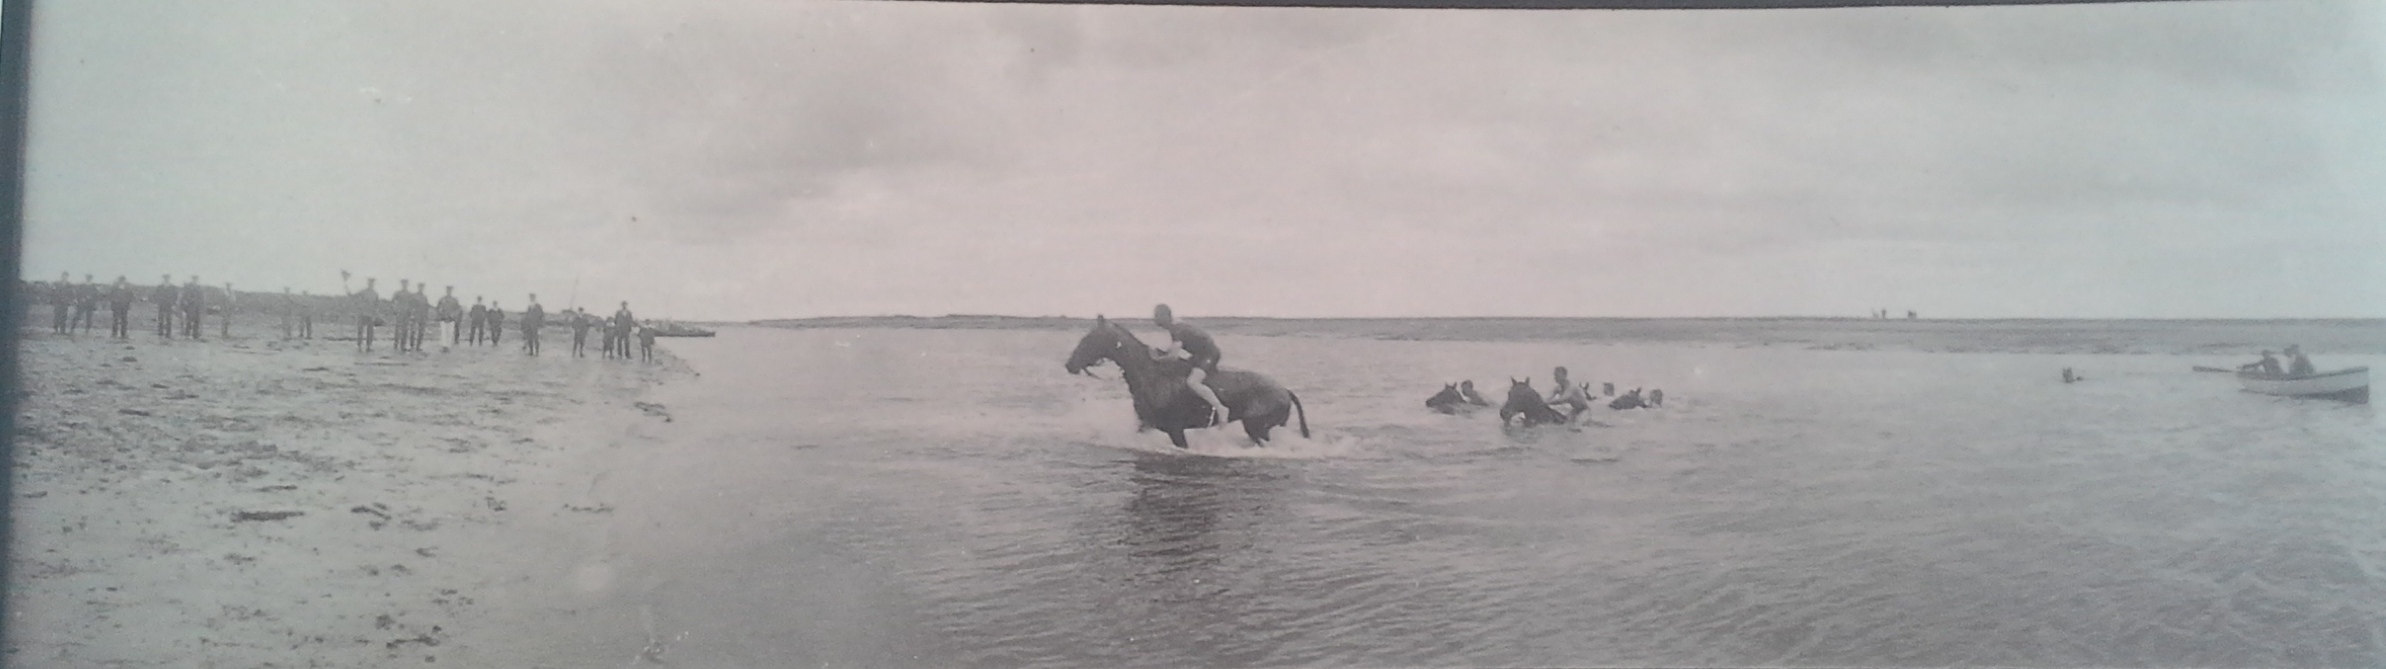 1906 Cavalry Training 1906, Bannow Historical Society Wexford